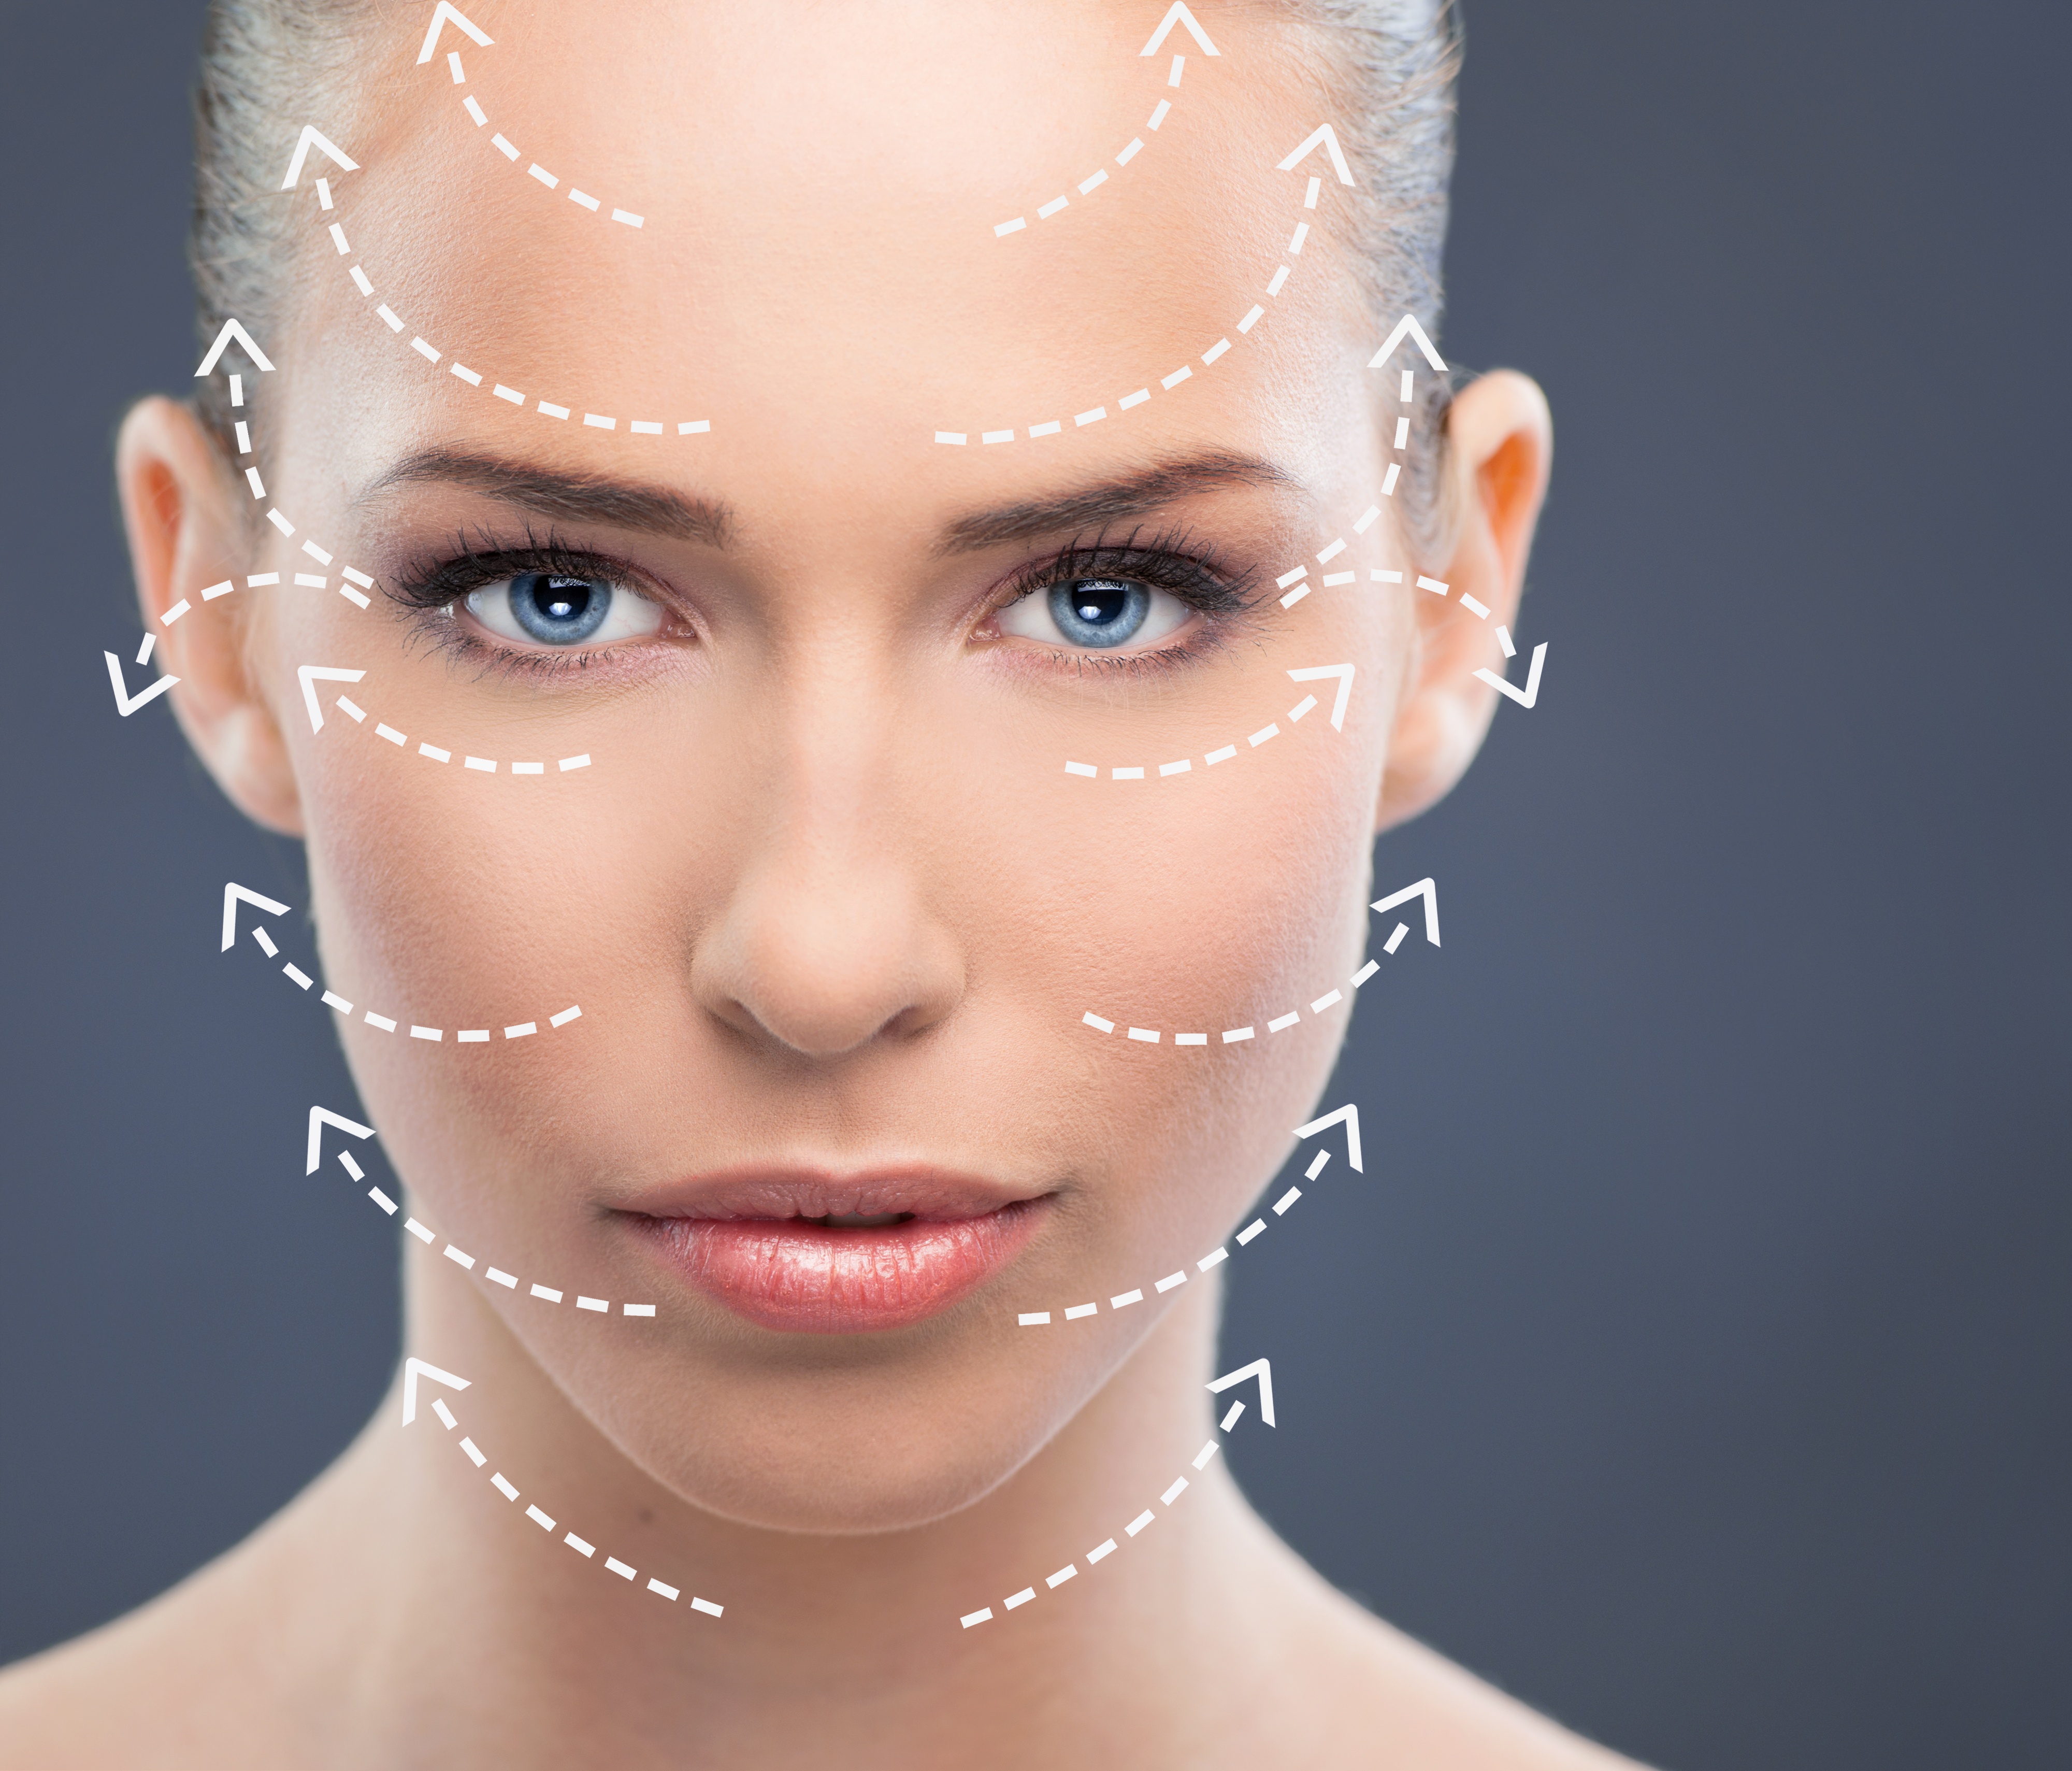 Face with arrows shutterstock_135243698